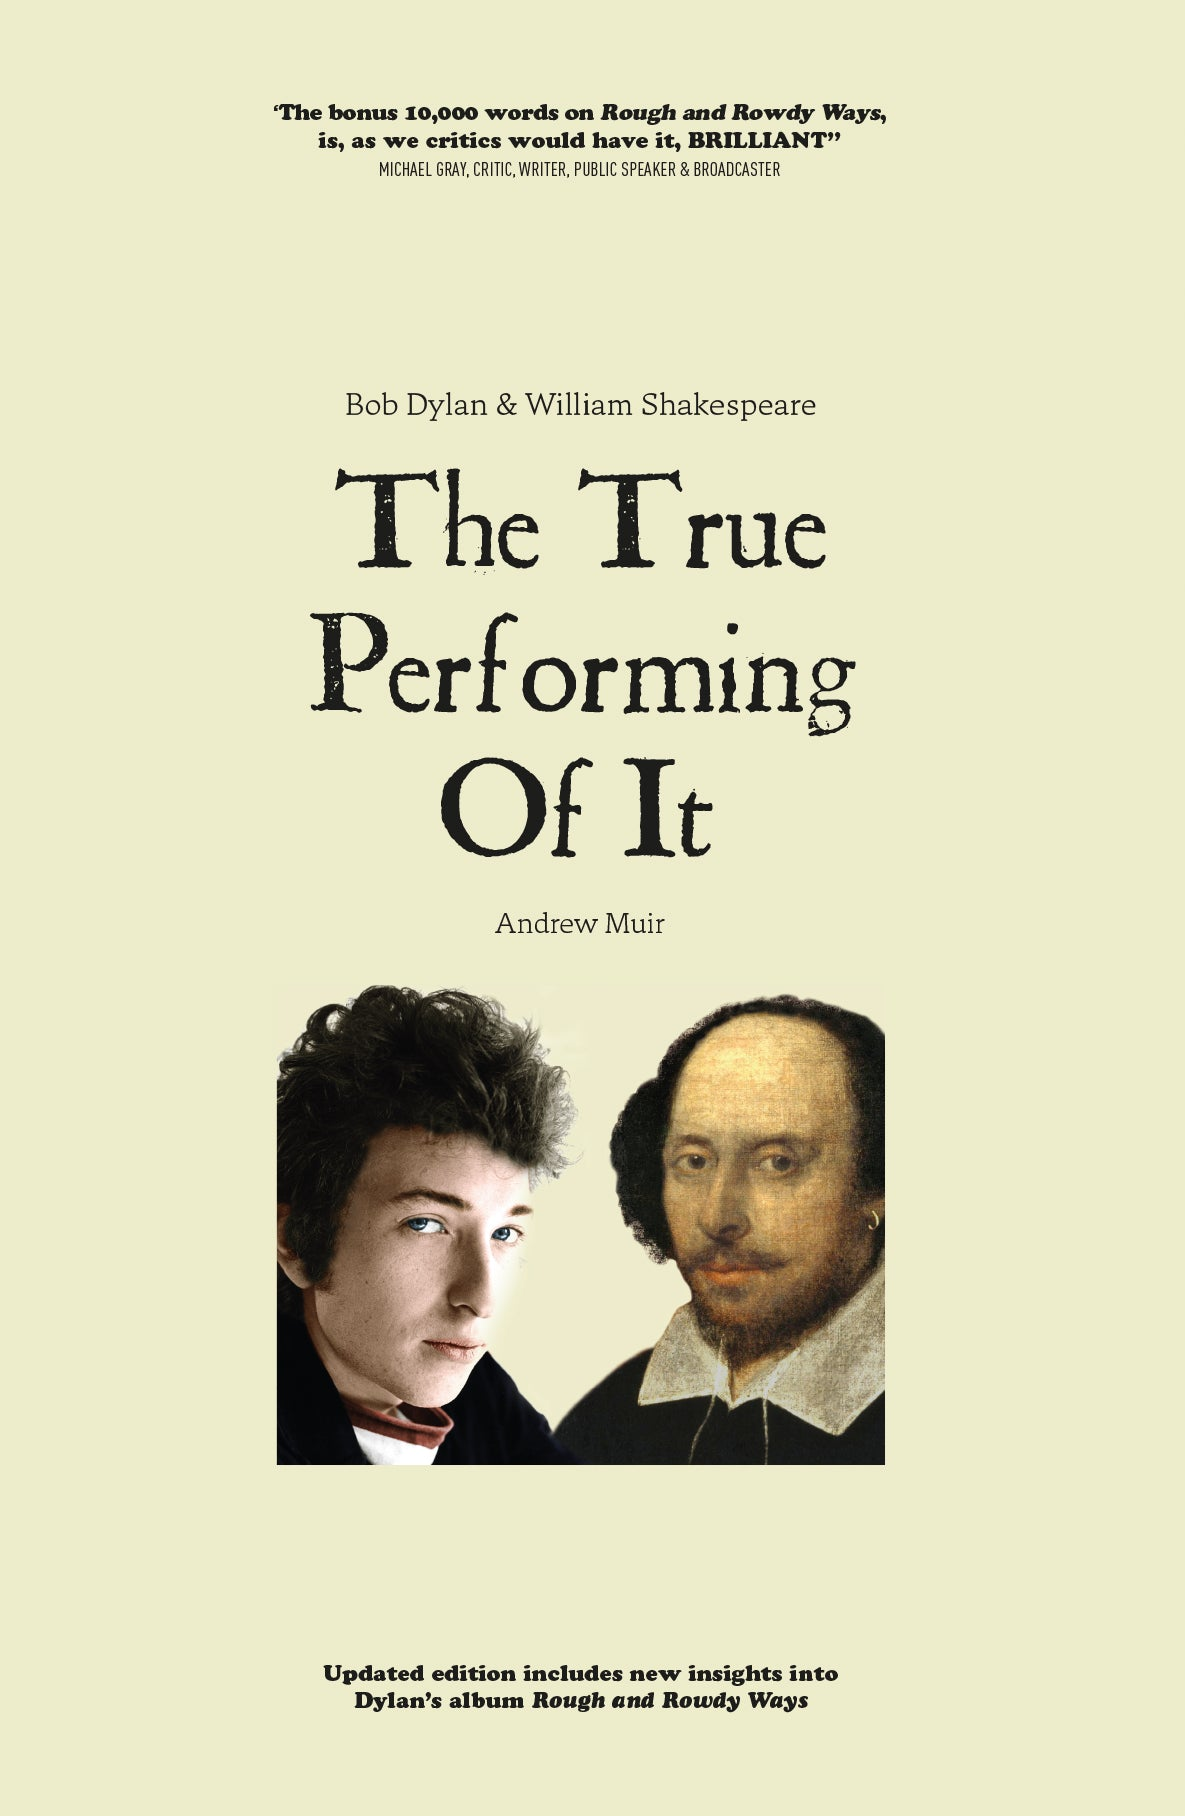 Bob Dylan & William Shakespeare: The True Performing of It